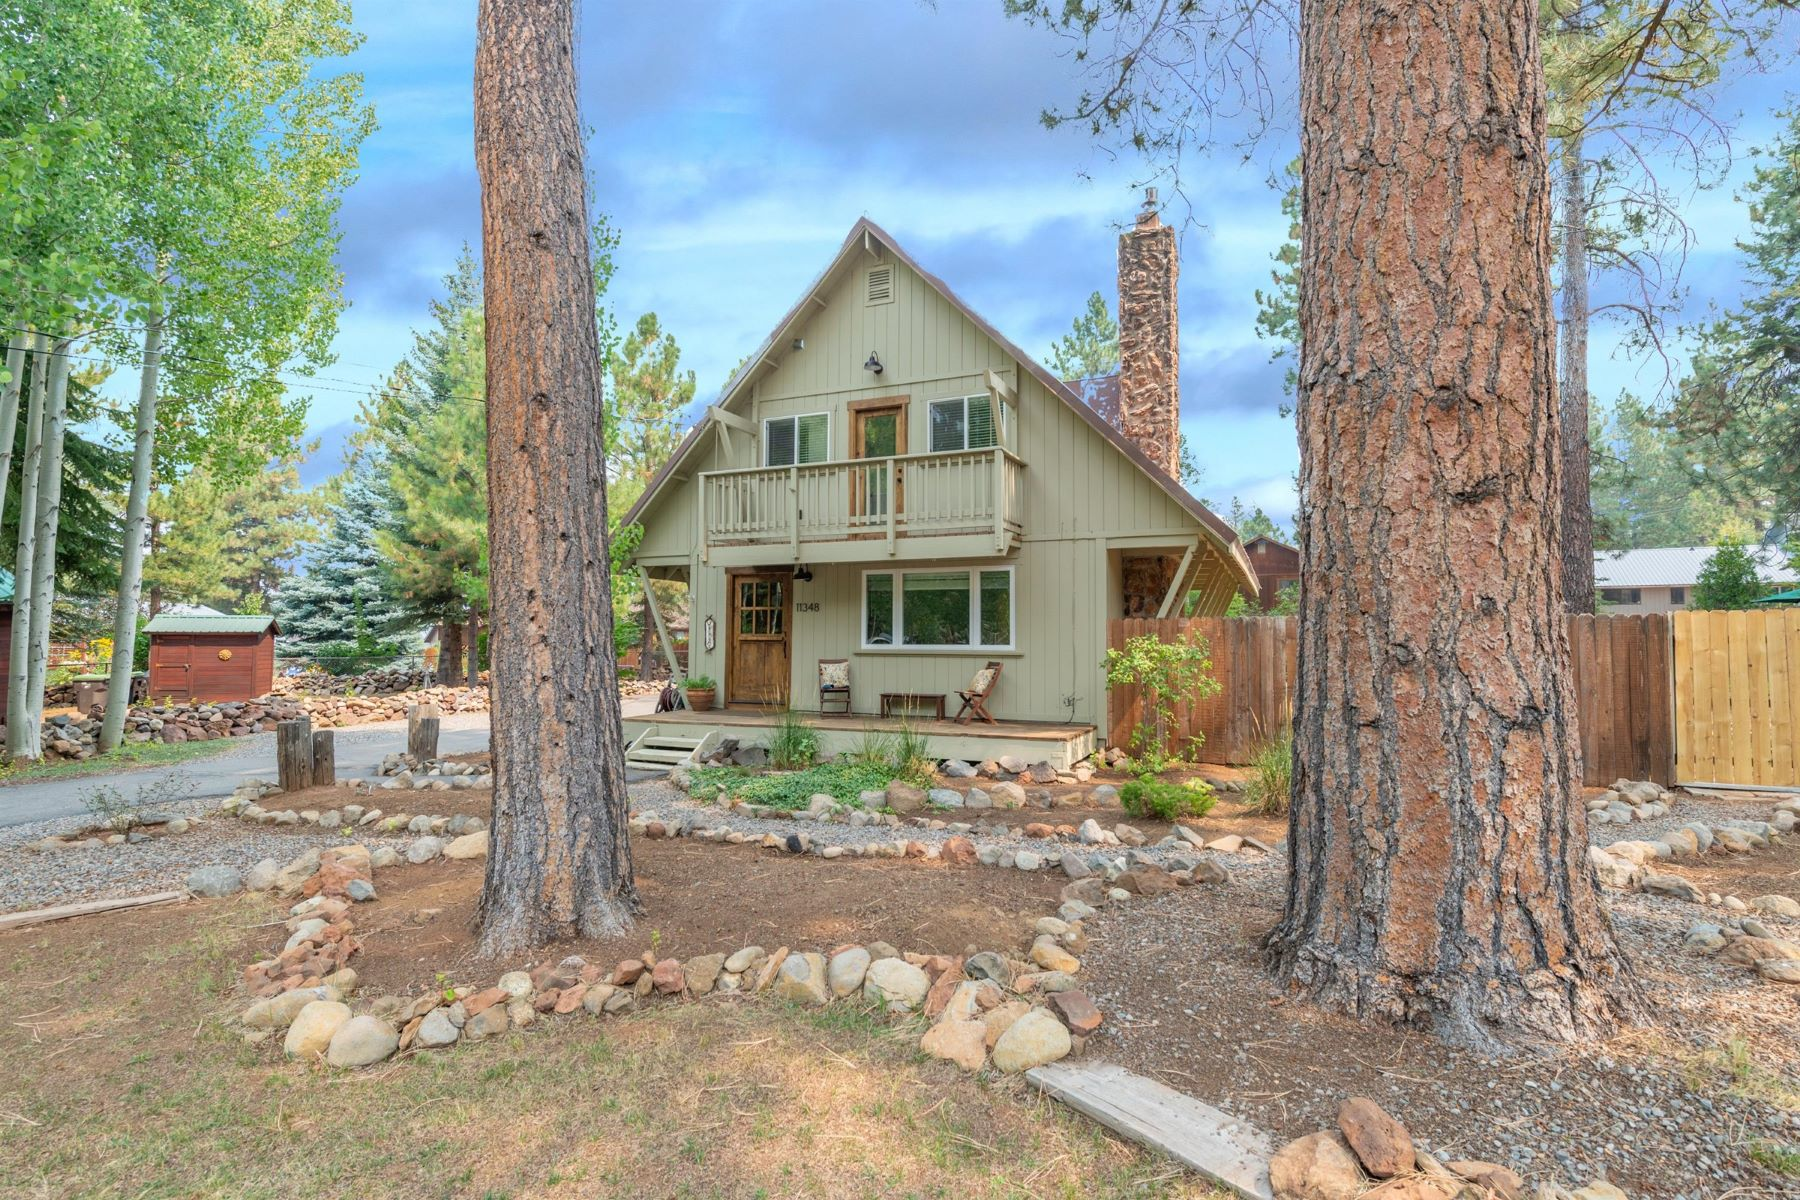 Beautiful Glenshire Chalet 11348 Huntsman Leap Truckee, California 96161 Estados Unidos